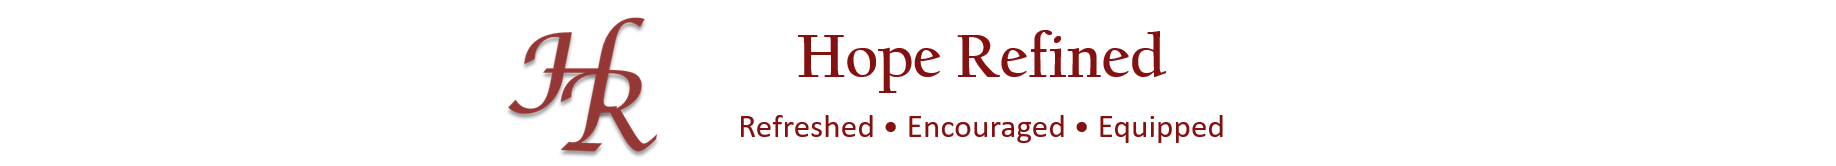 HOPE Refined